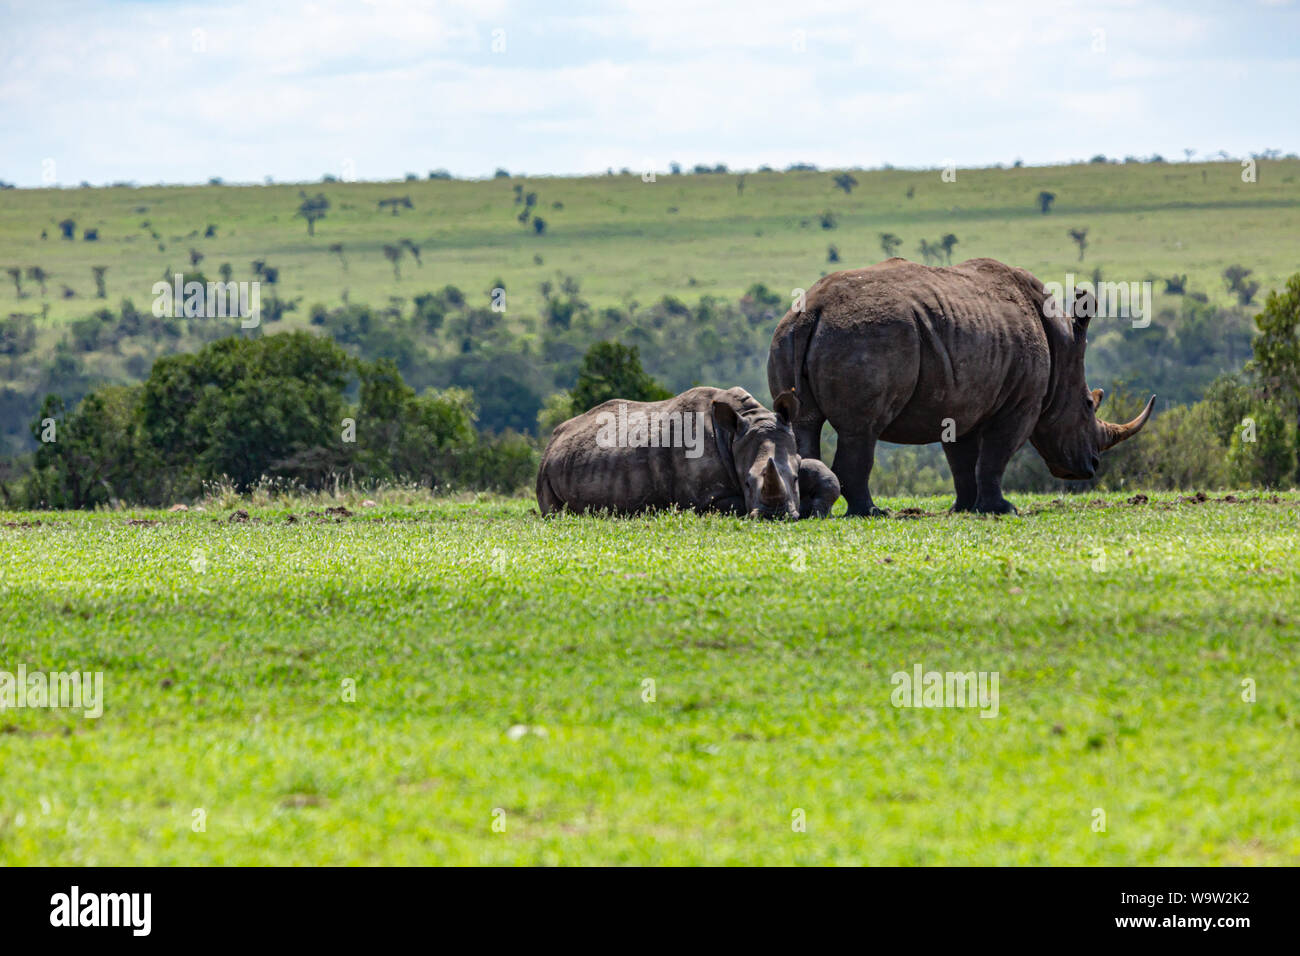 Colour photograph of female Southern White Rhinoceros with calf in landscape orientation, taken in Kenya. - Stock Photo